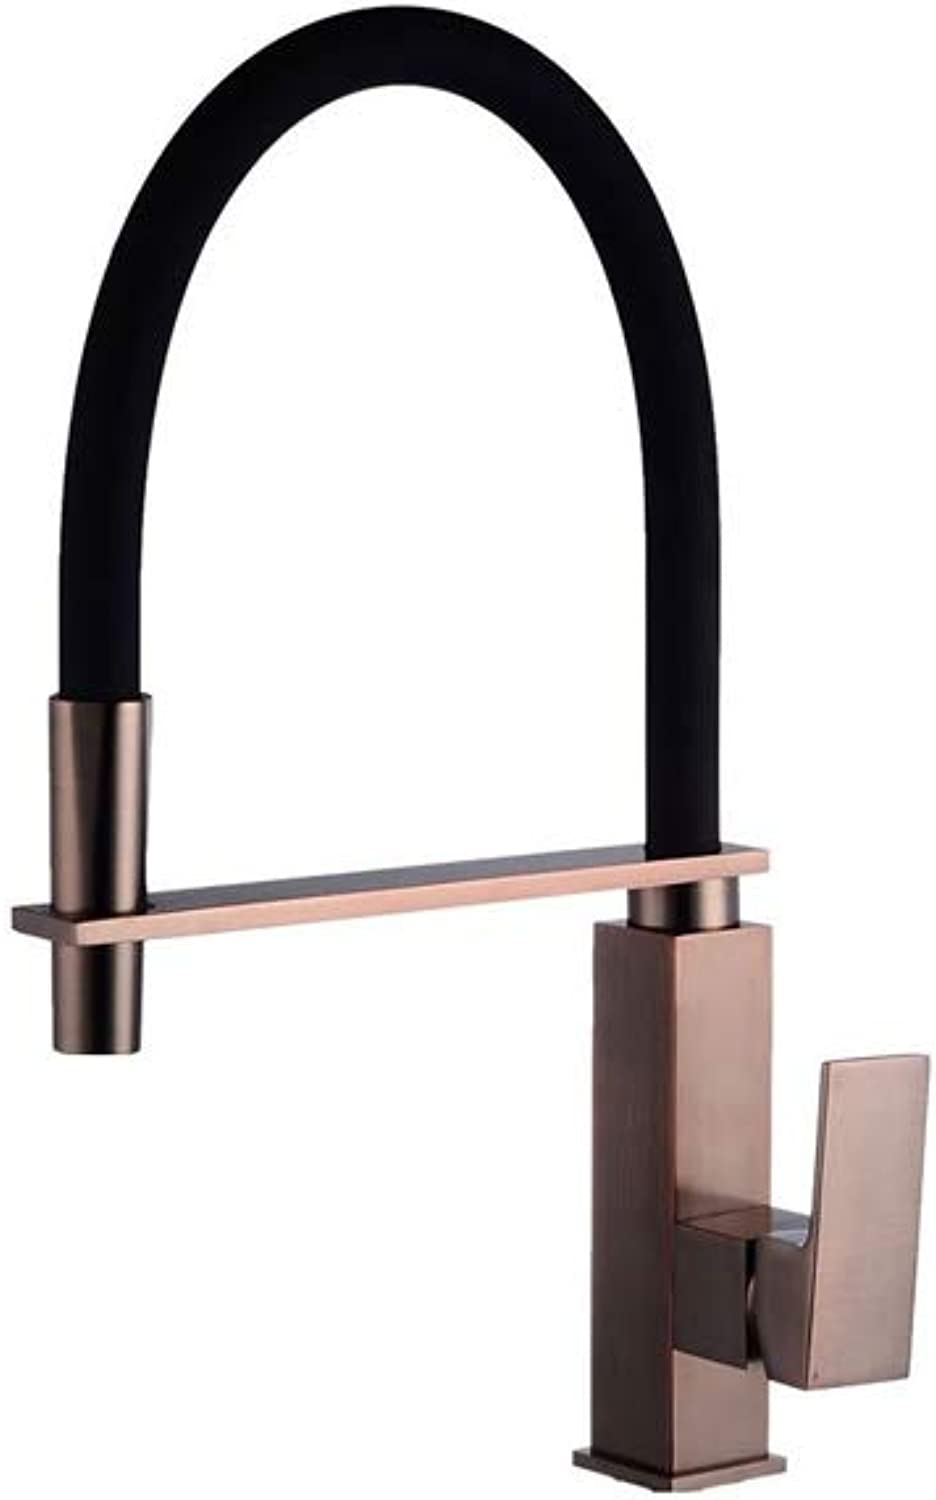 AXWT Water-tap Black Ancient Plating Drawing All Bronze Sink Kitchen Faucet Pull Hose Tap 360° Rinse No Dead Ends Taps